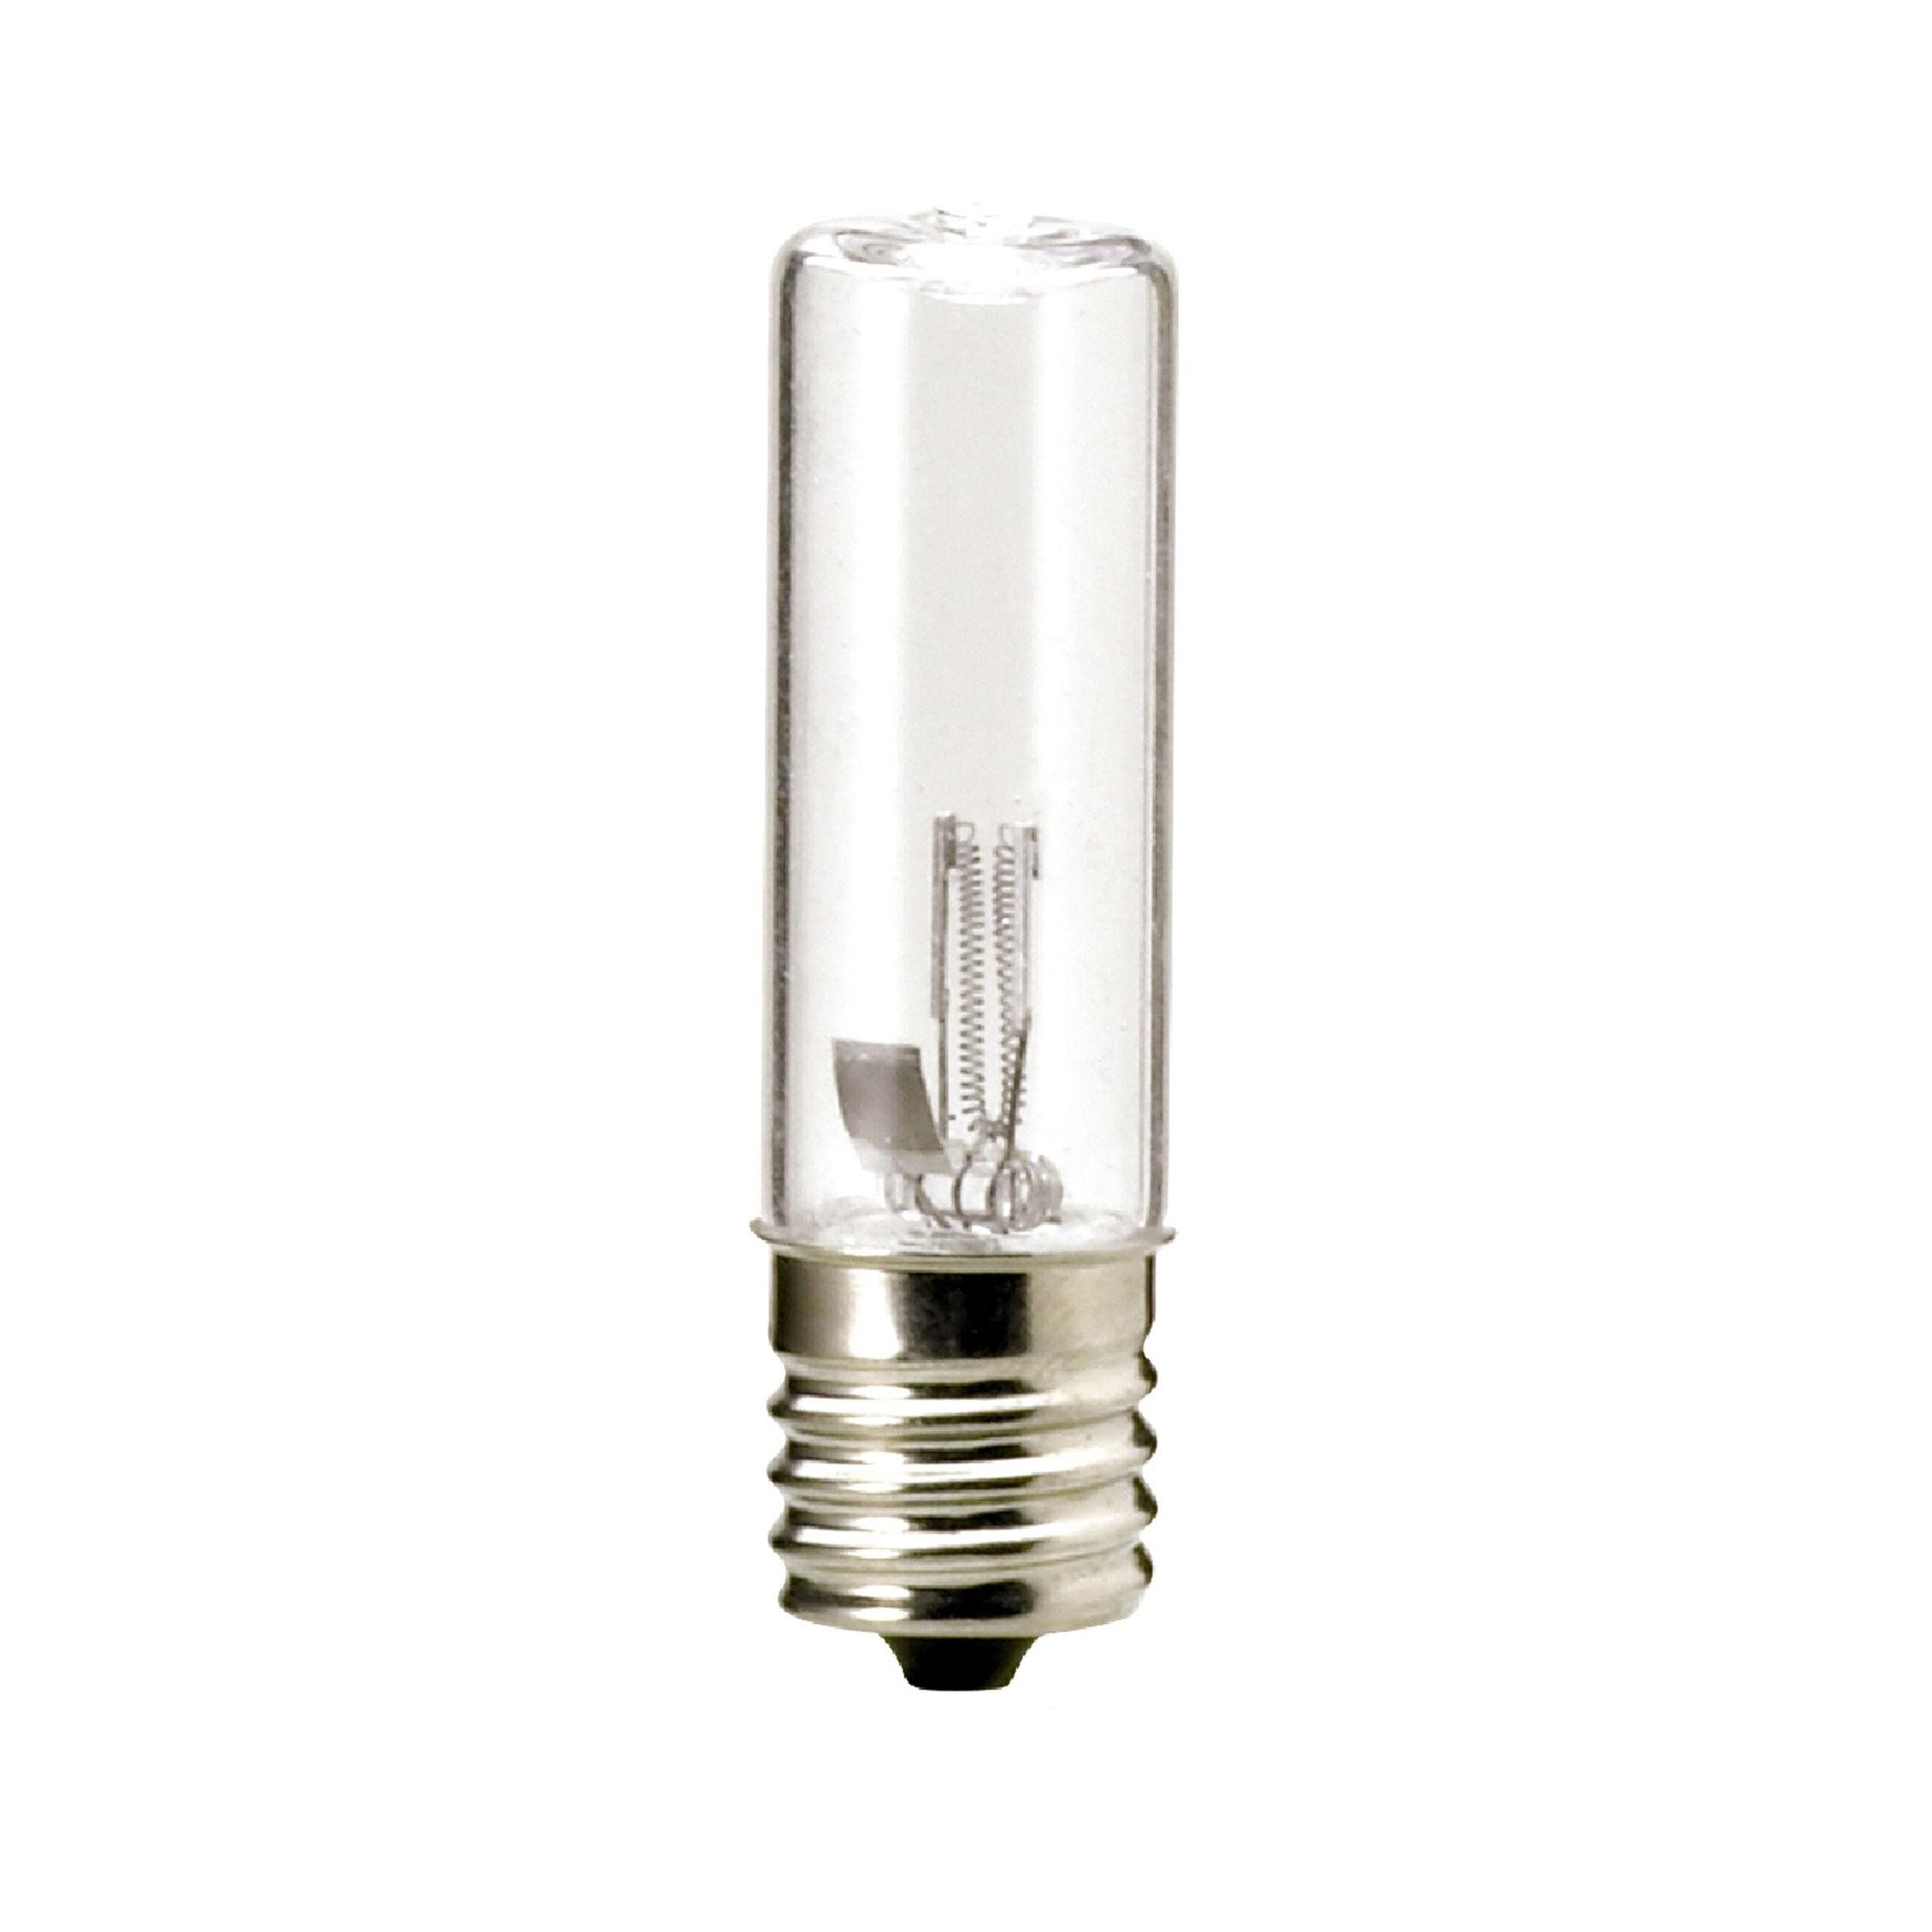 light bulb;uv bulb;gg1100w;gg1100b; germ guardian